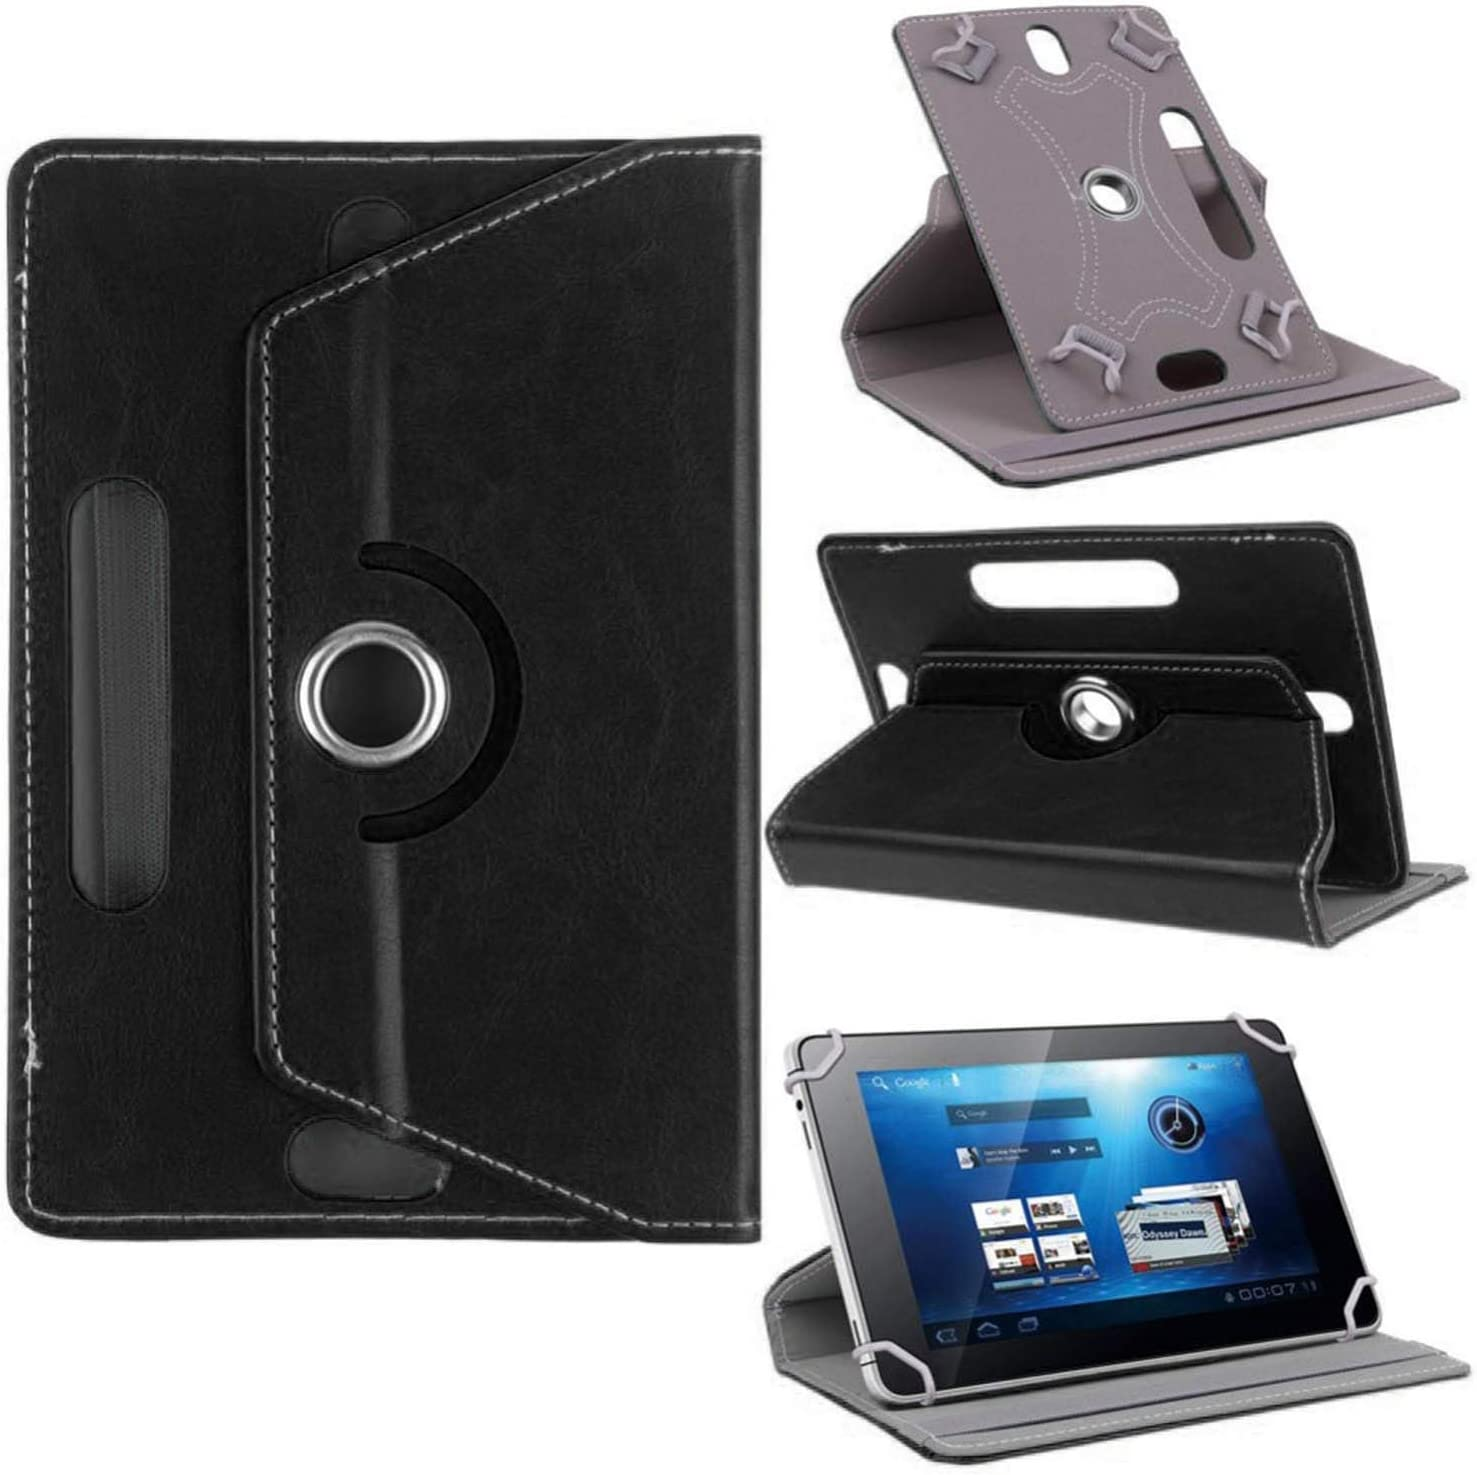 CoverON Universal 9-10.6 inch Screen Size Tablet Case, Multi-Angle Stand Folio Adjustable Protective Cover Compatiable for iPad Samsung Galaxy Tab Acer Lenovo - PU Leather Holder Band (Black)